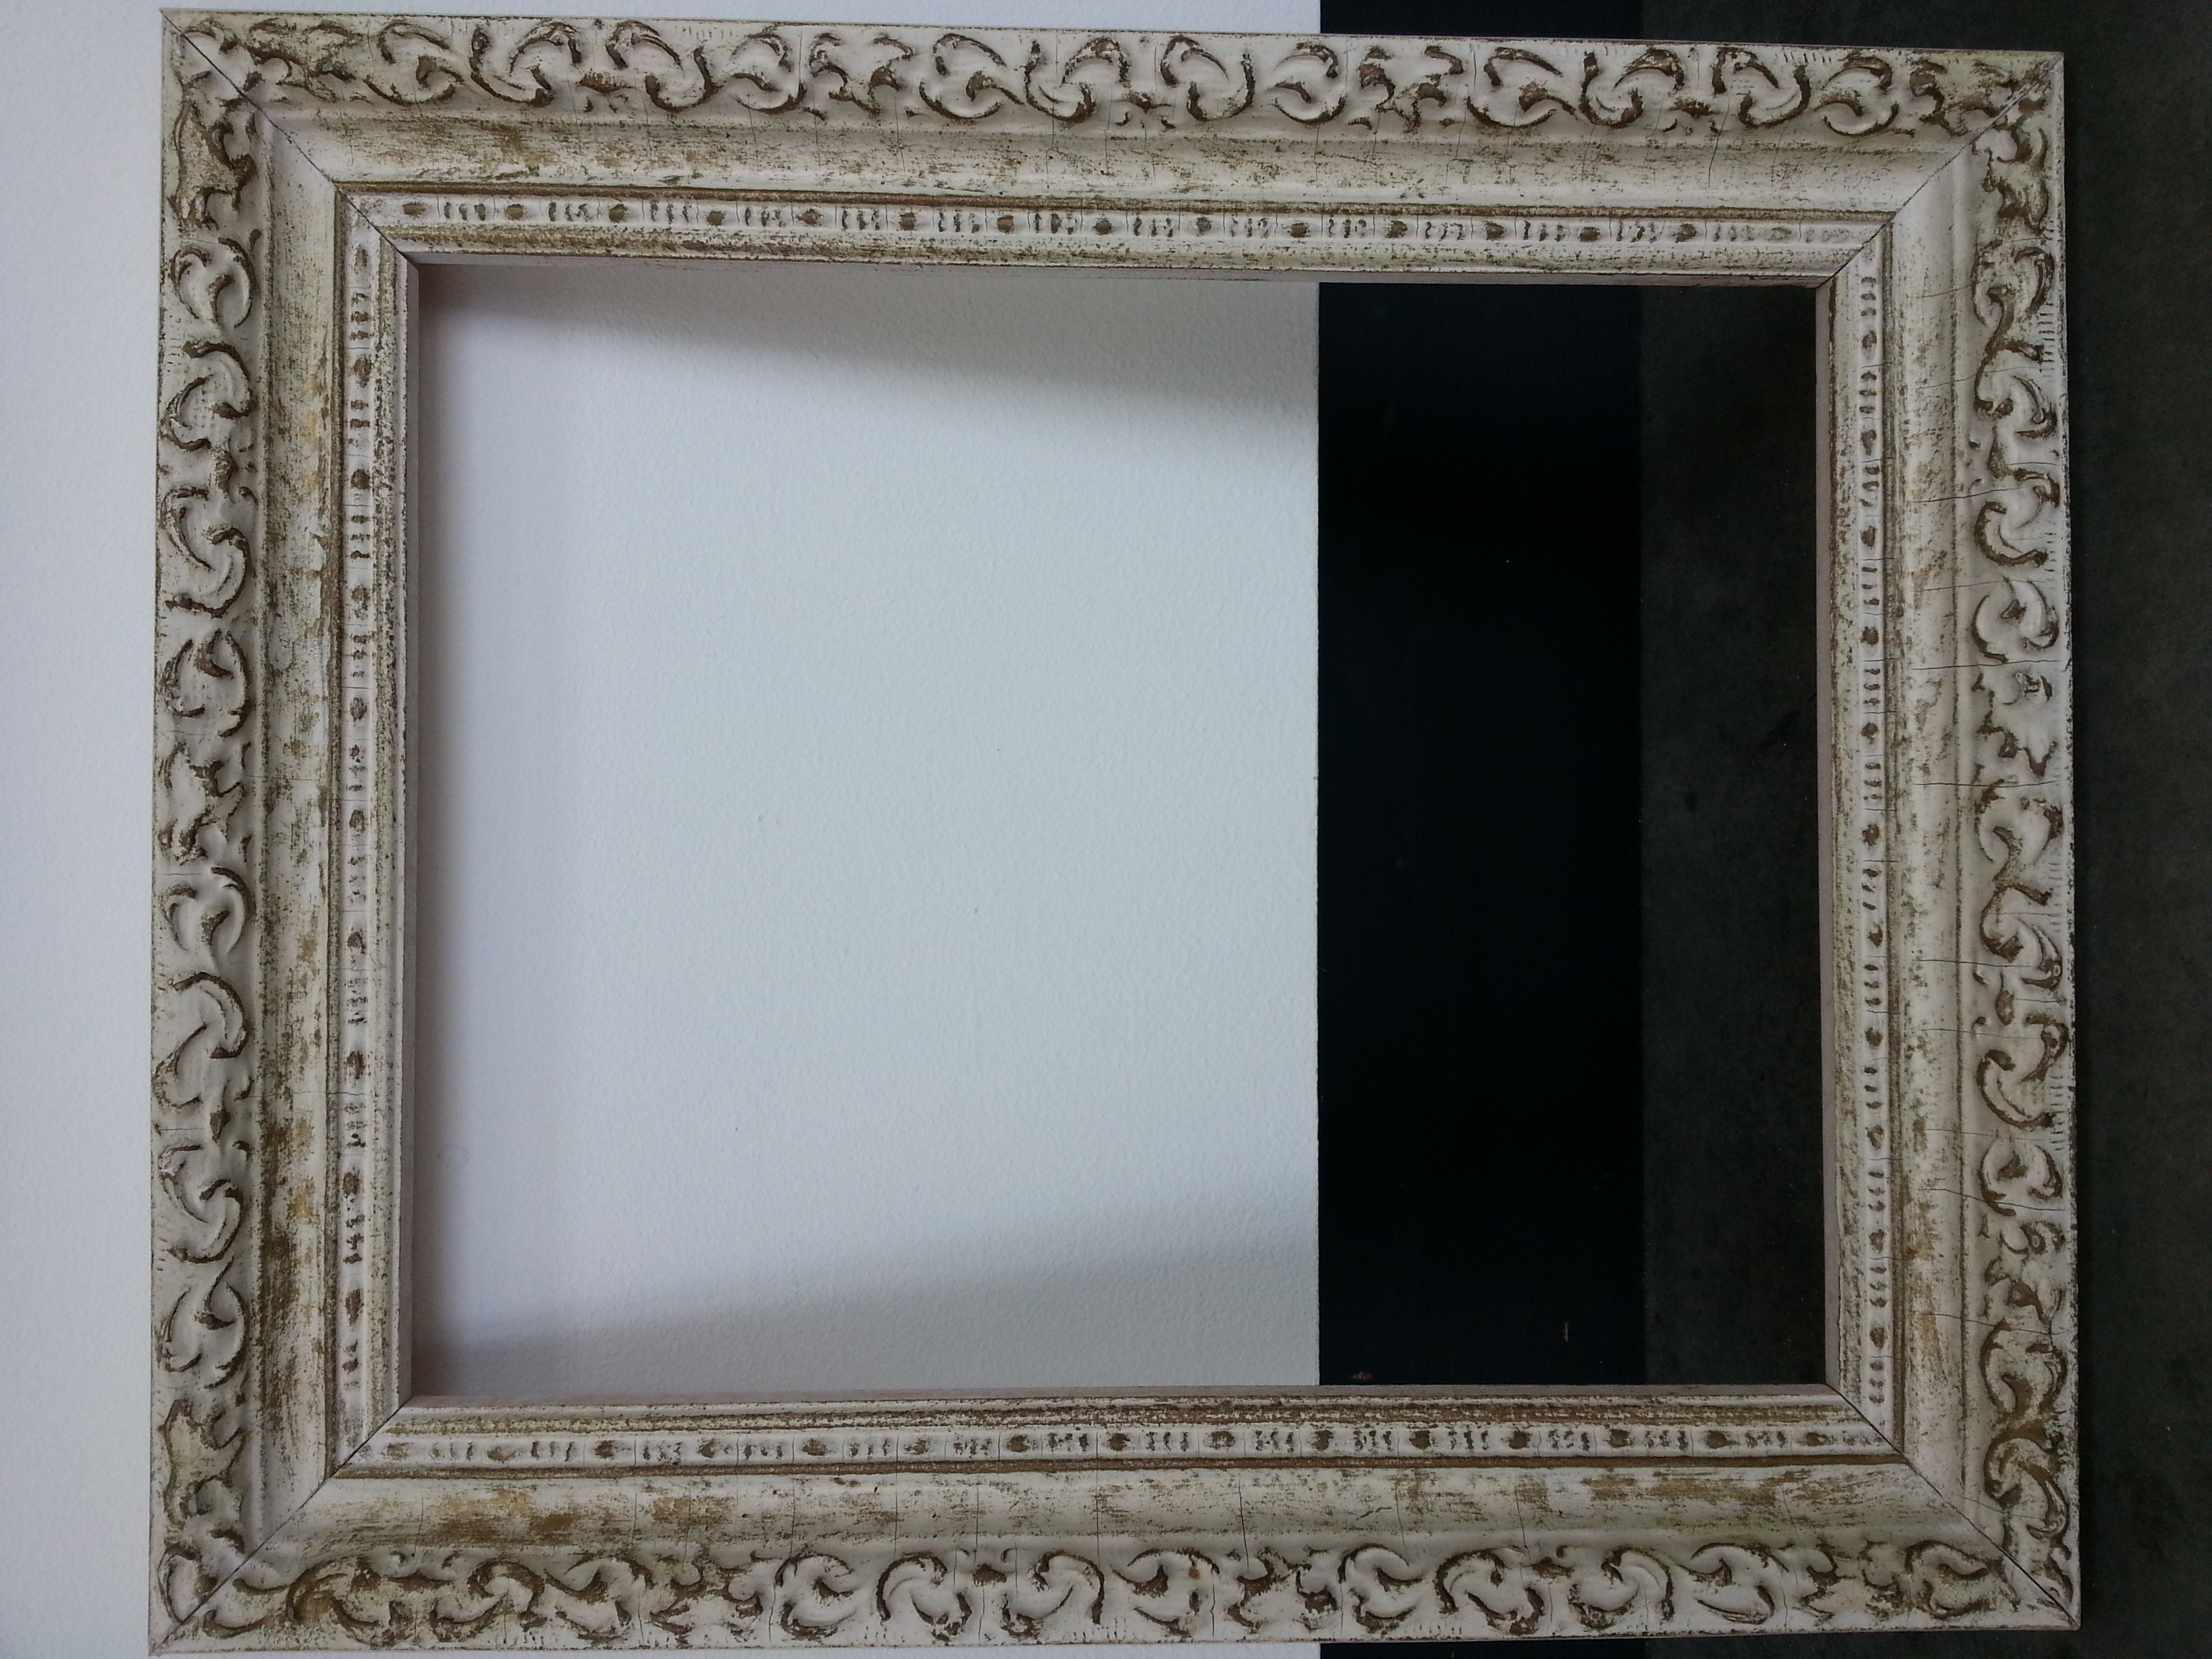 """Vintage Distressed / White Wash Finish     Frame R.S. 8"""" x 10"""" / Frame O.D. 10 1/4"""" x 12 1/4""""    $80     Available"""